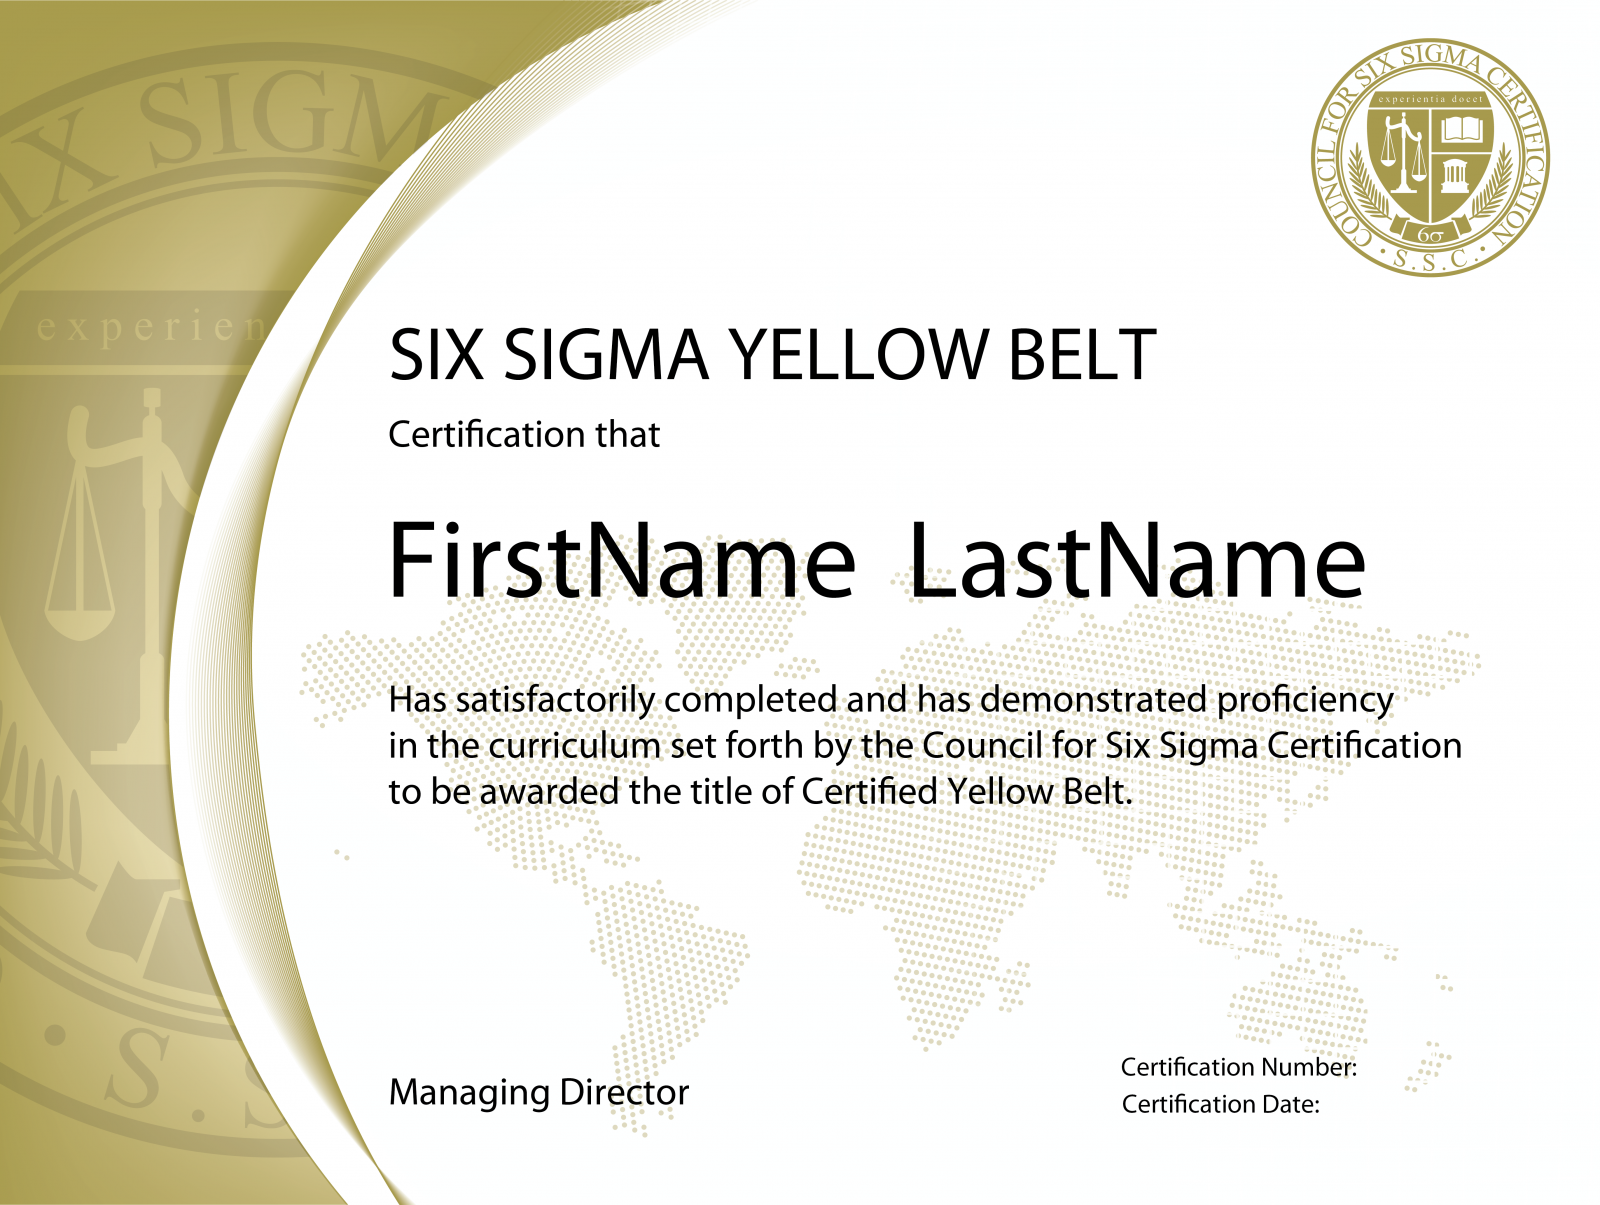 Six Sigma Yellow Belt Certification The Council For Six Sigma